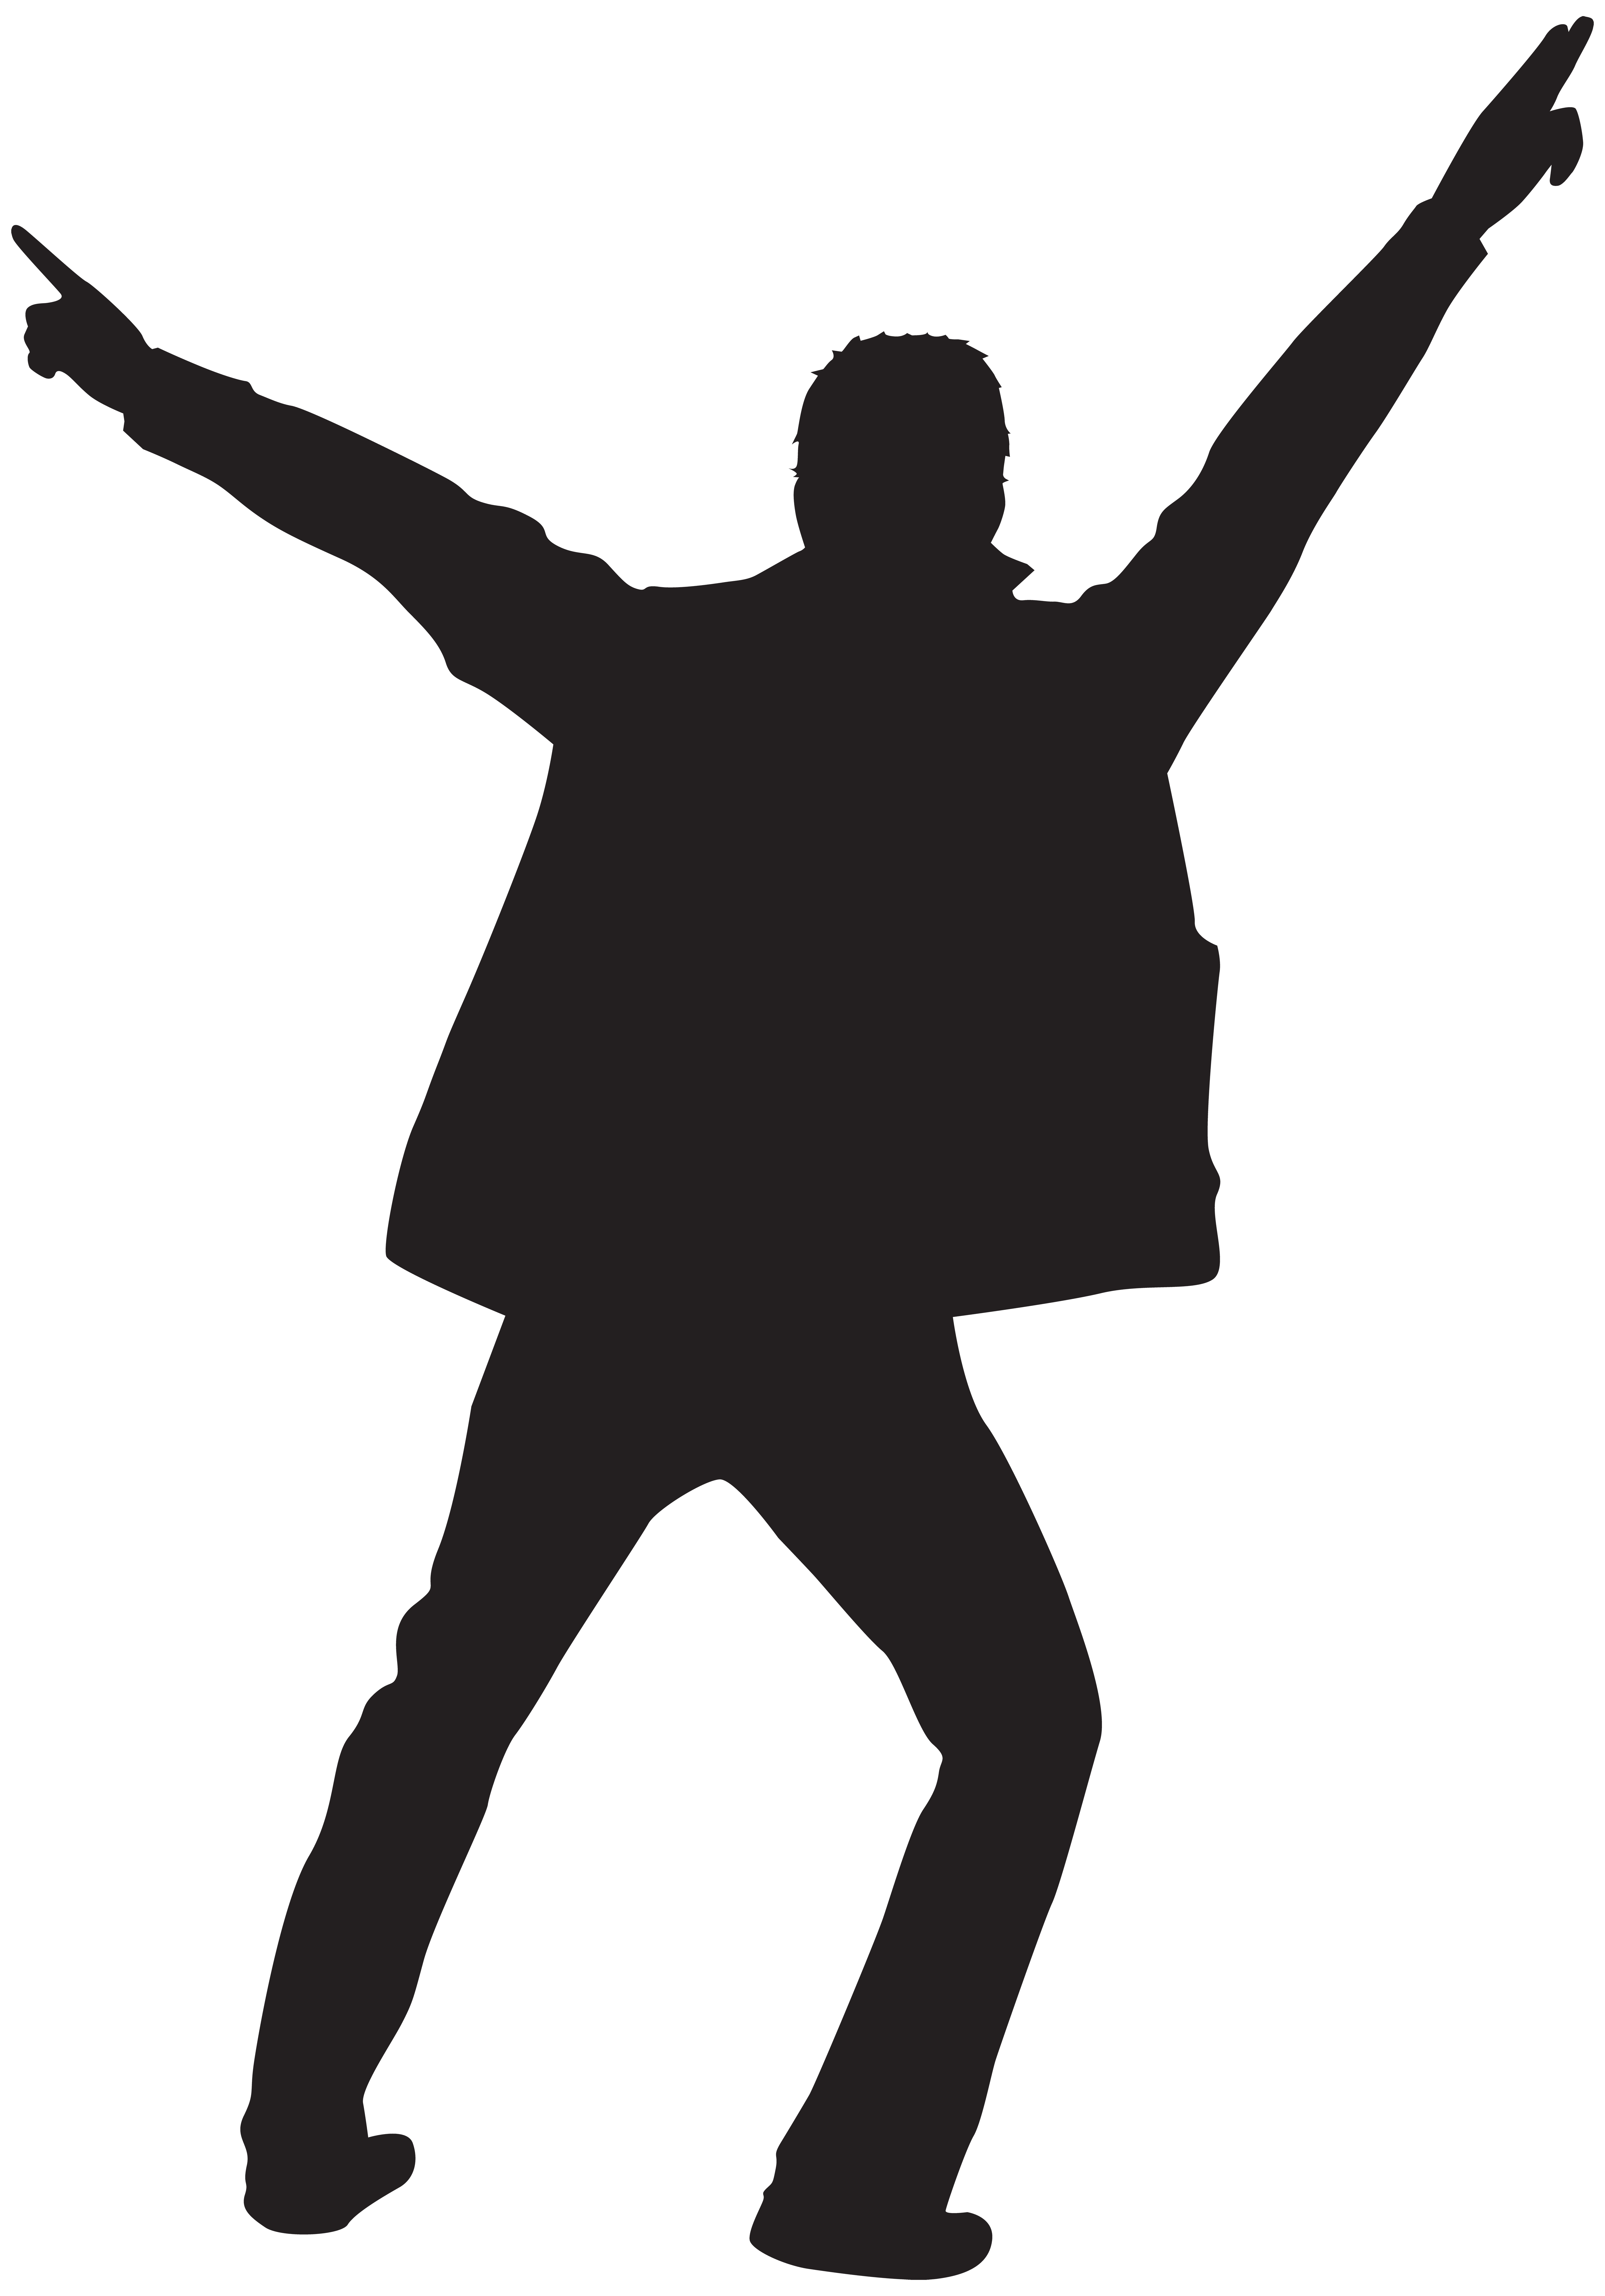 clipart library stock Guy clipart dancer. Dancing man silhouette at